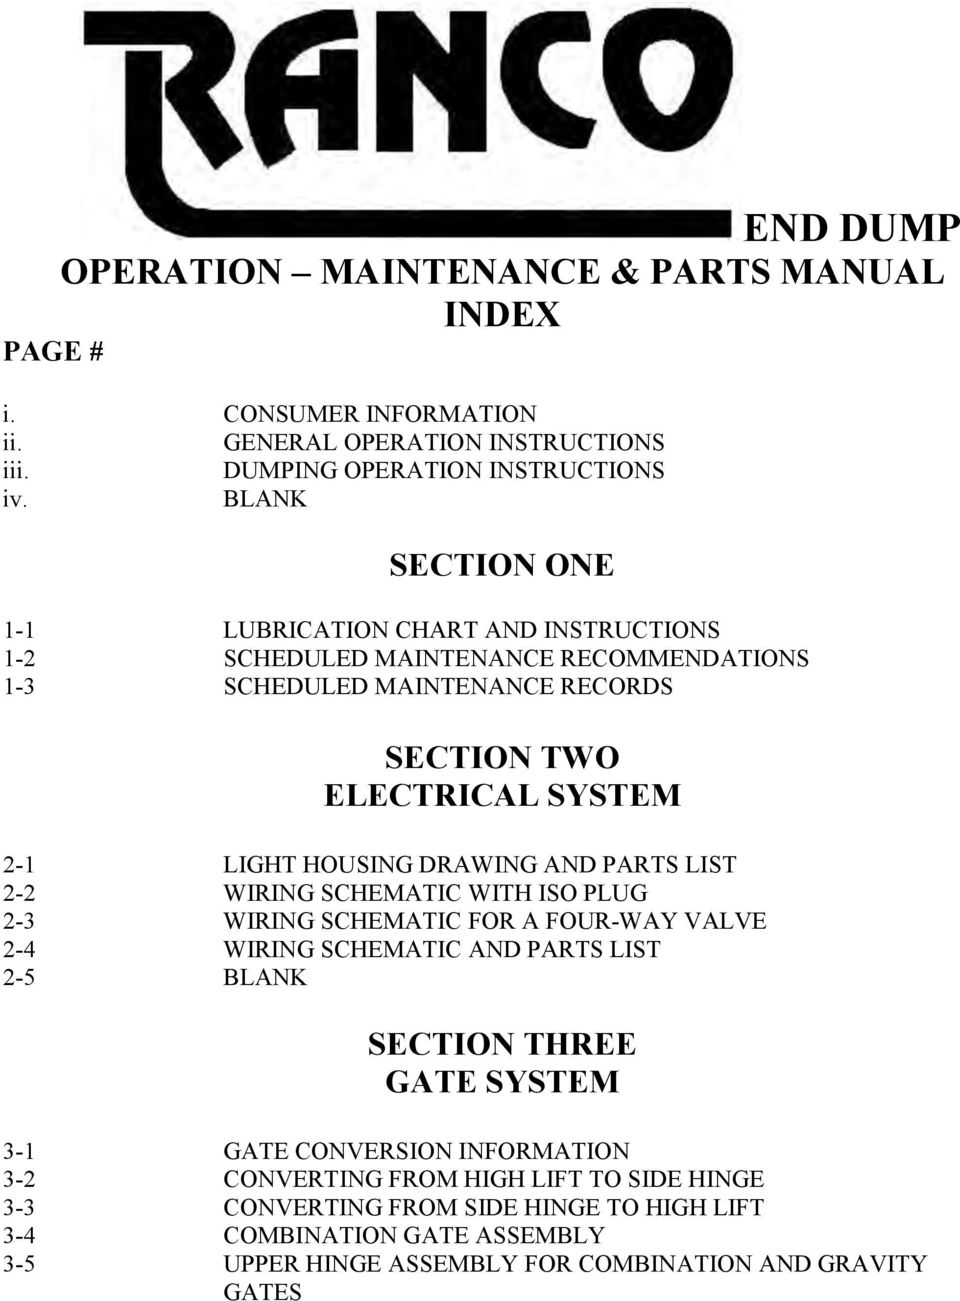 END DUMP OPERATION MAINTENANCE & PARTS MANUAL INDEX PAGE # - PDF Ranco Bottom Dump Wiring Diagrams on